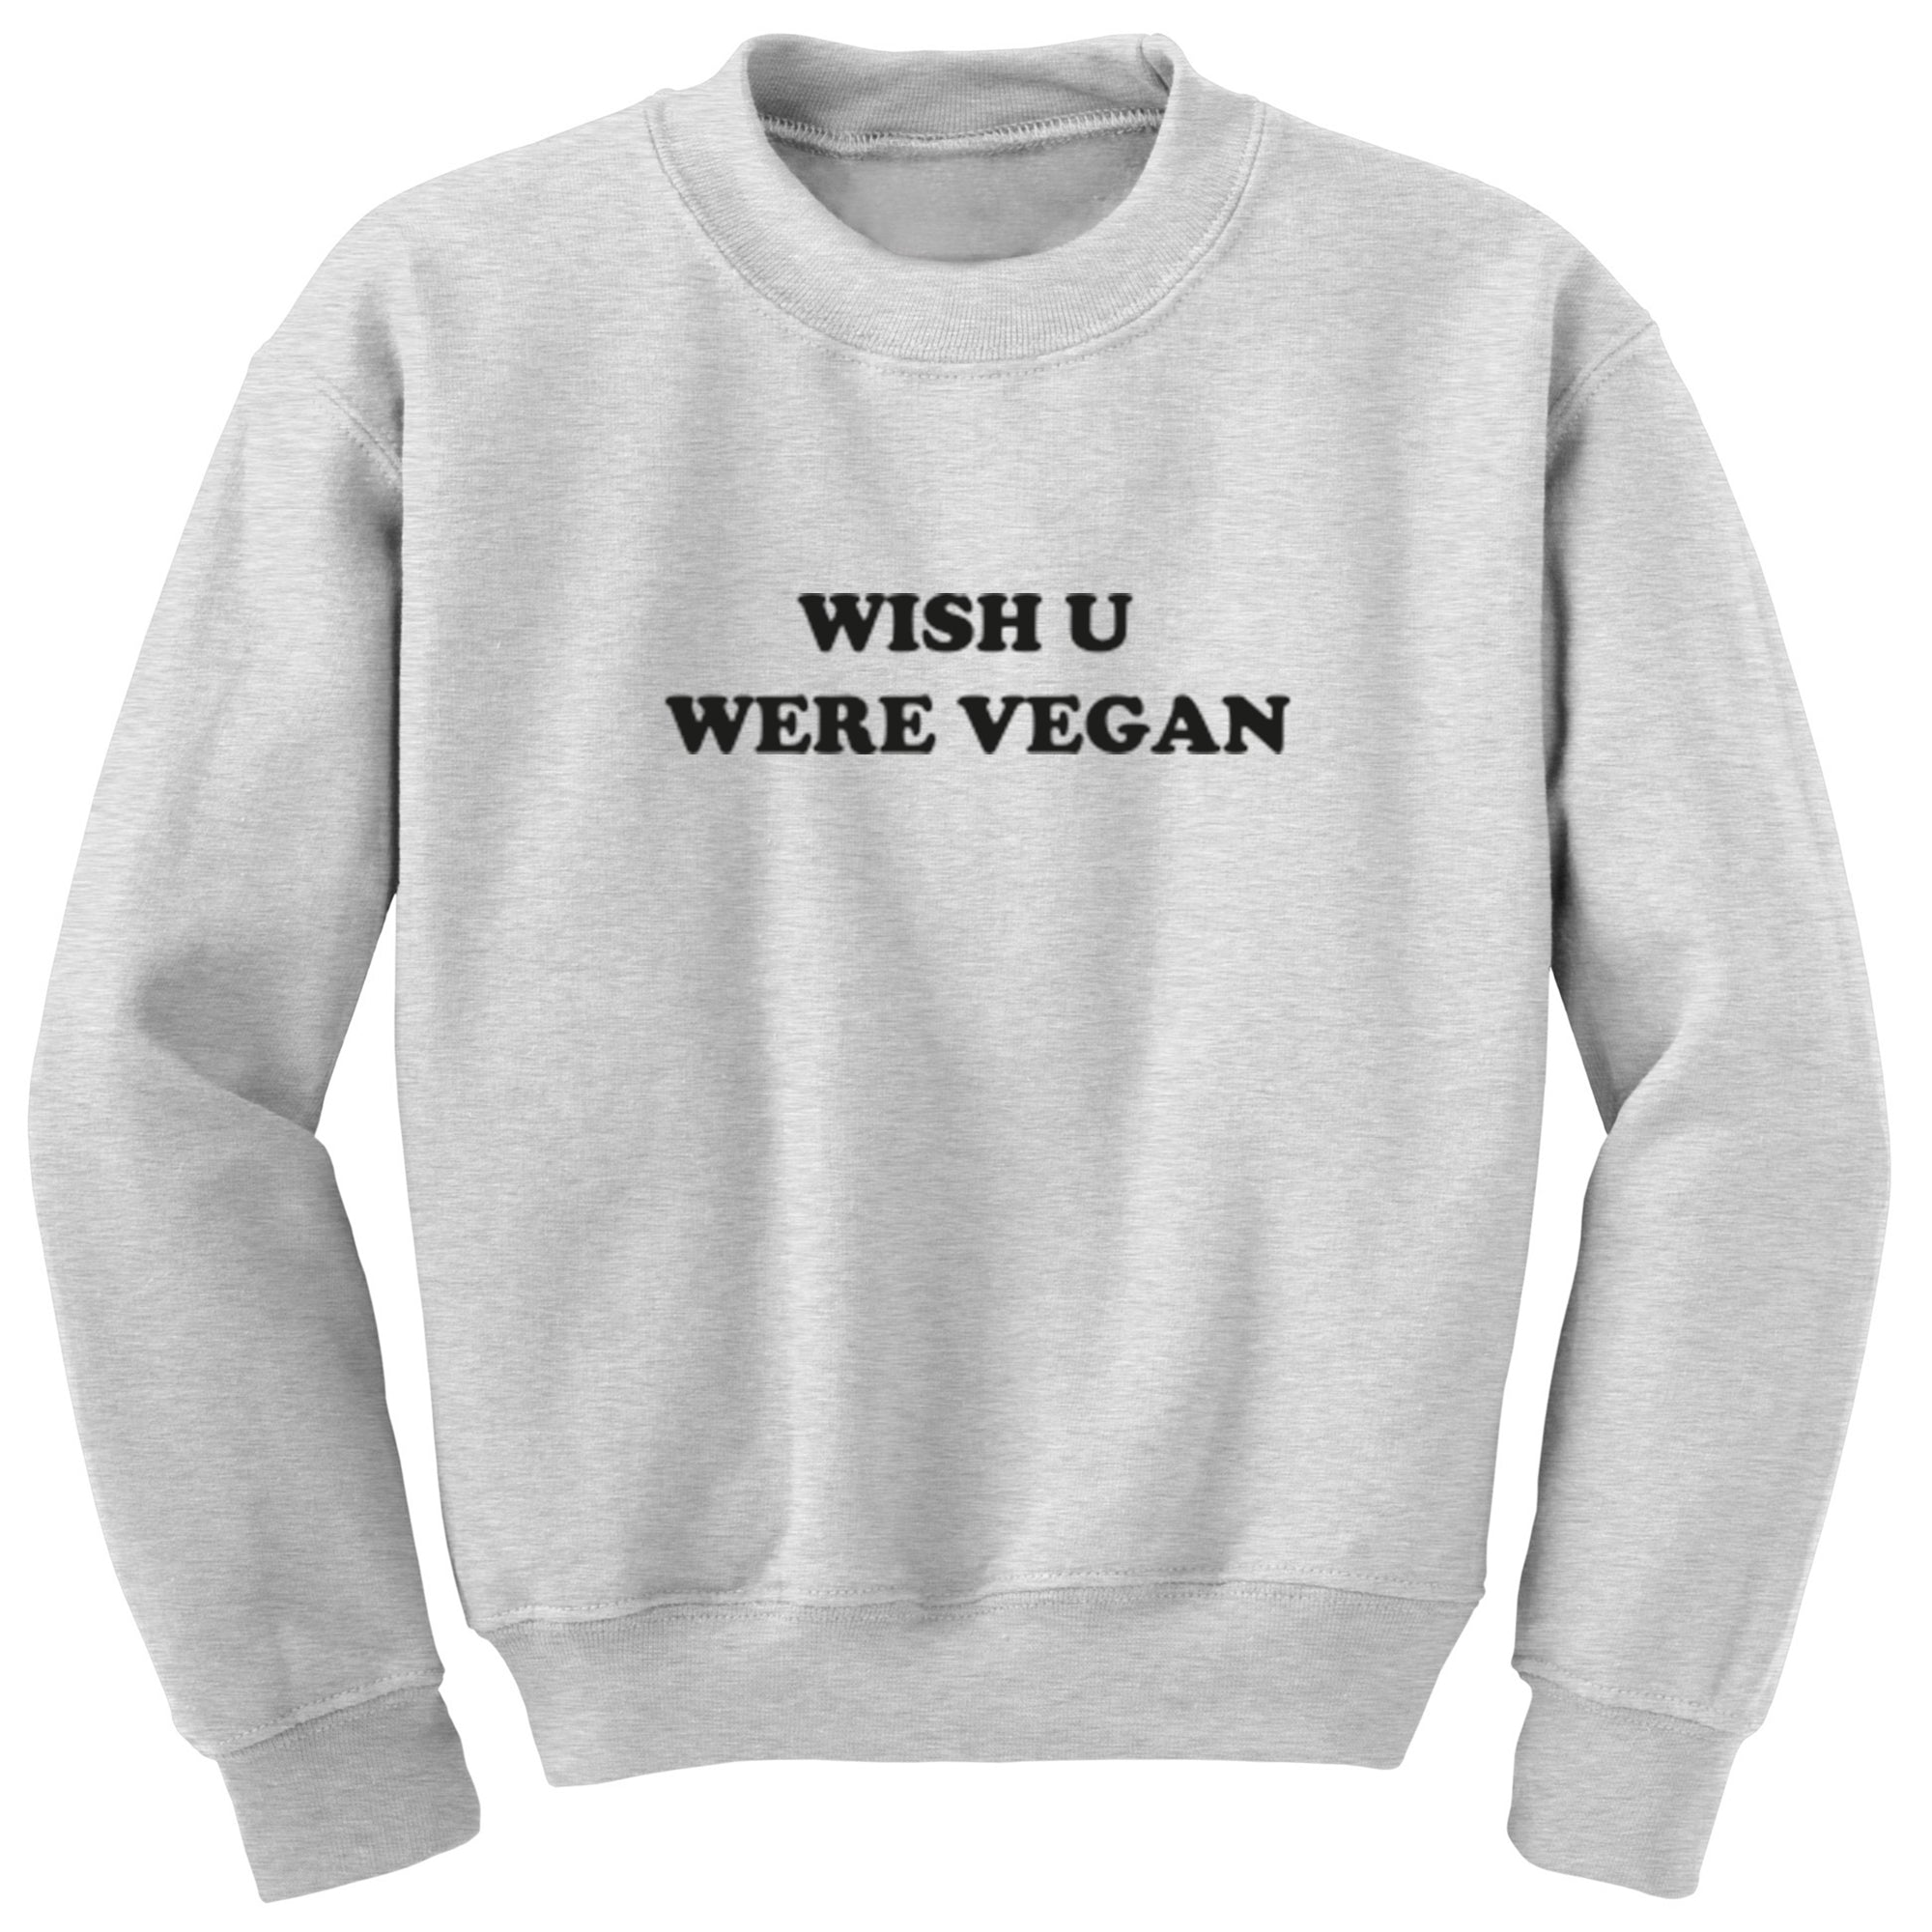 Wish U Were Vegan Unisex Jumper S1259 - Illustrated Identity Ltd.